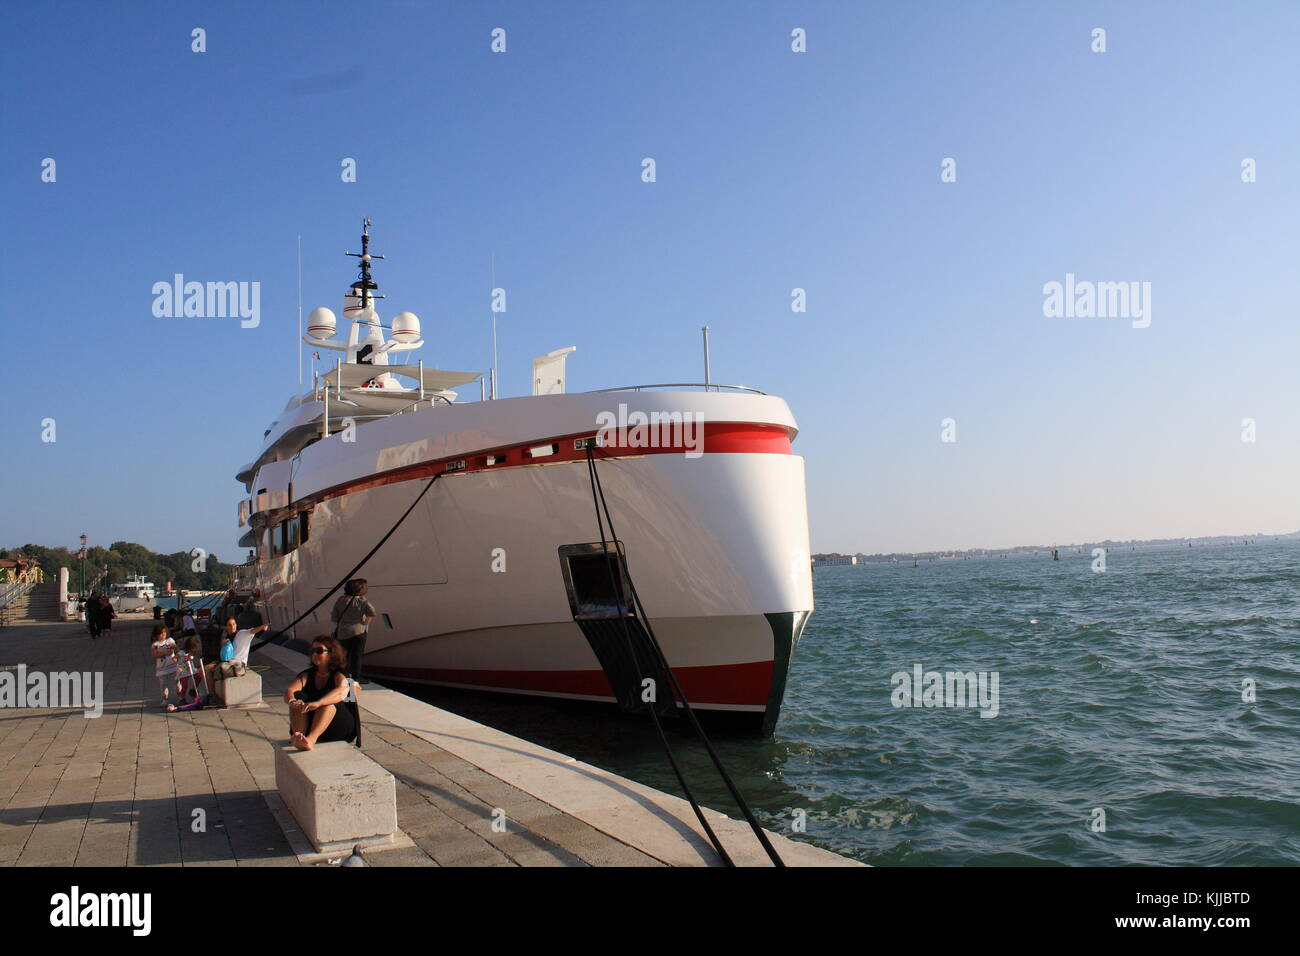 Forever One luxury boat by isa yachts, anchoring in Venice